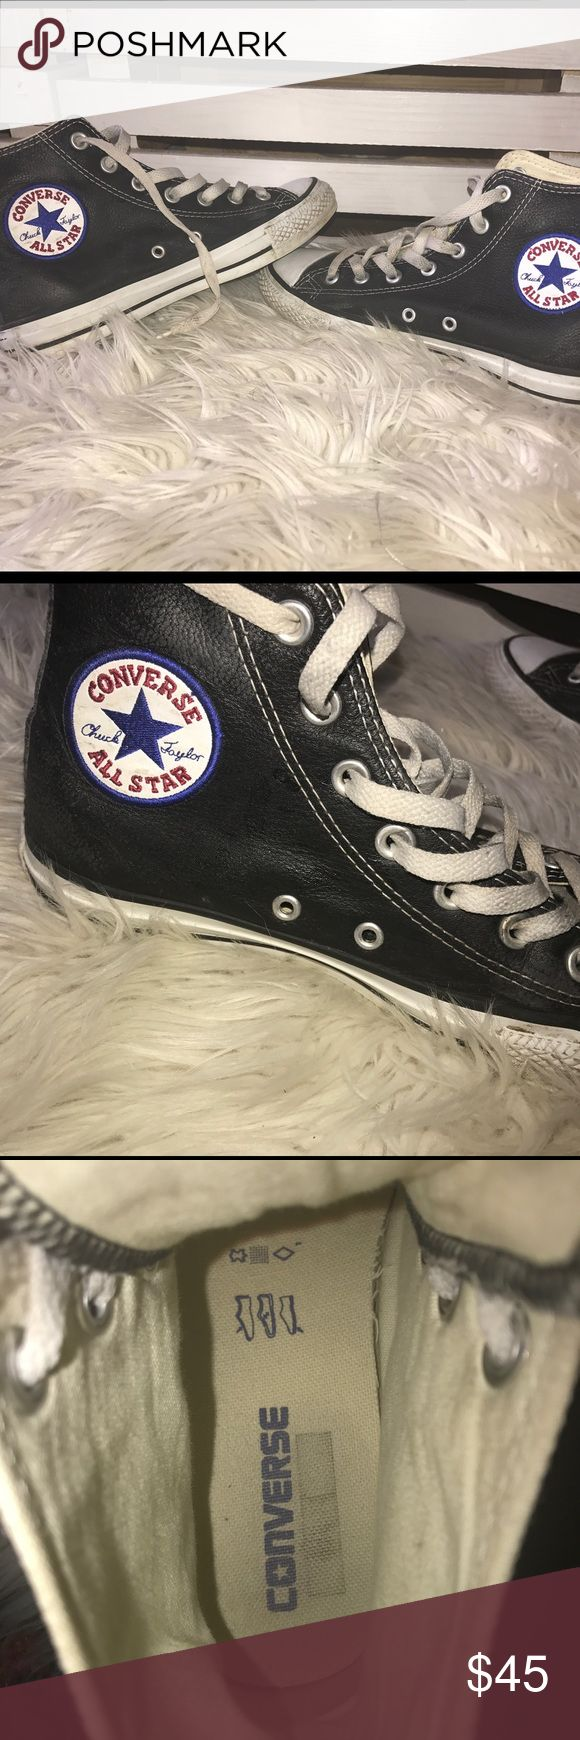 Chuck taylor all star leather This converse chuck taylor all star sneaker adds rich, textured leather onto this iconic high top. Lightly worn, goes great with any casual outfit. Converse Shoes Sneakers